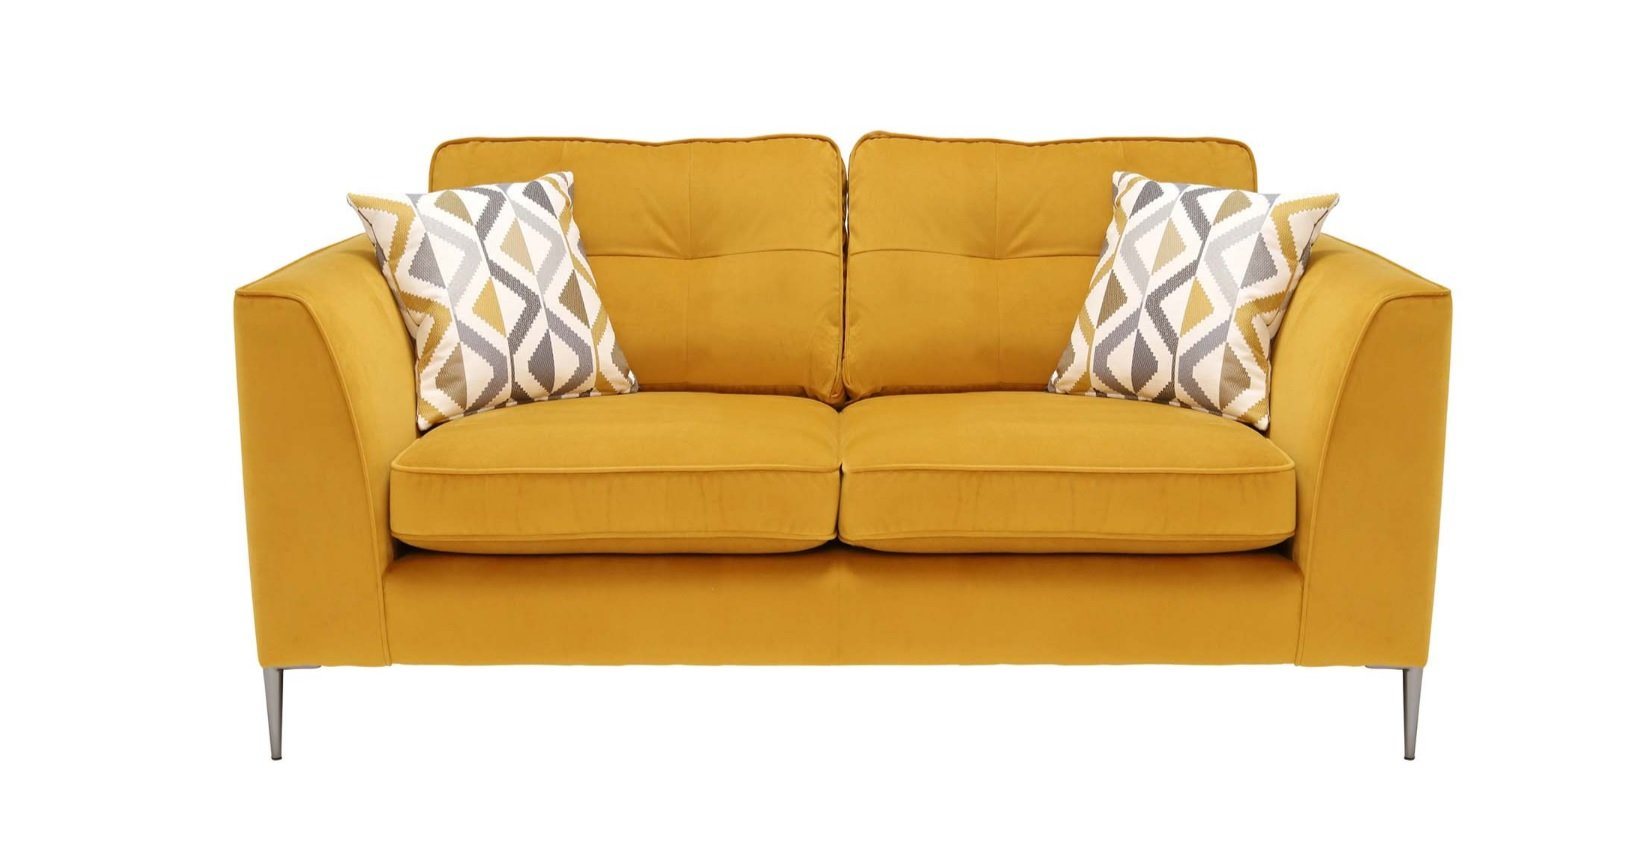 Whitemeadow Lorenzo Small Sofa   The Uk'S Lowest Prices Intended For Small Sofas And Chairs (View 2 of 15)